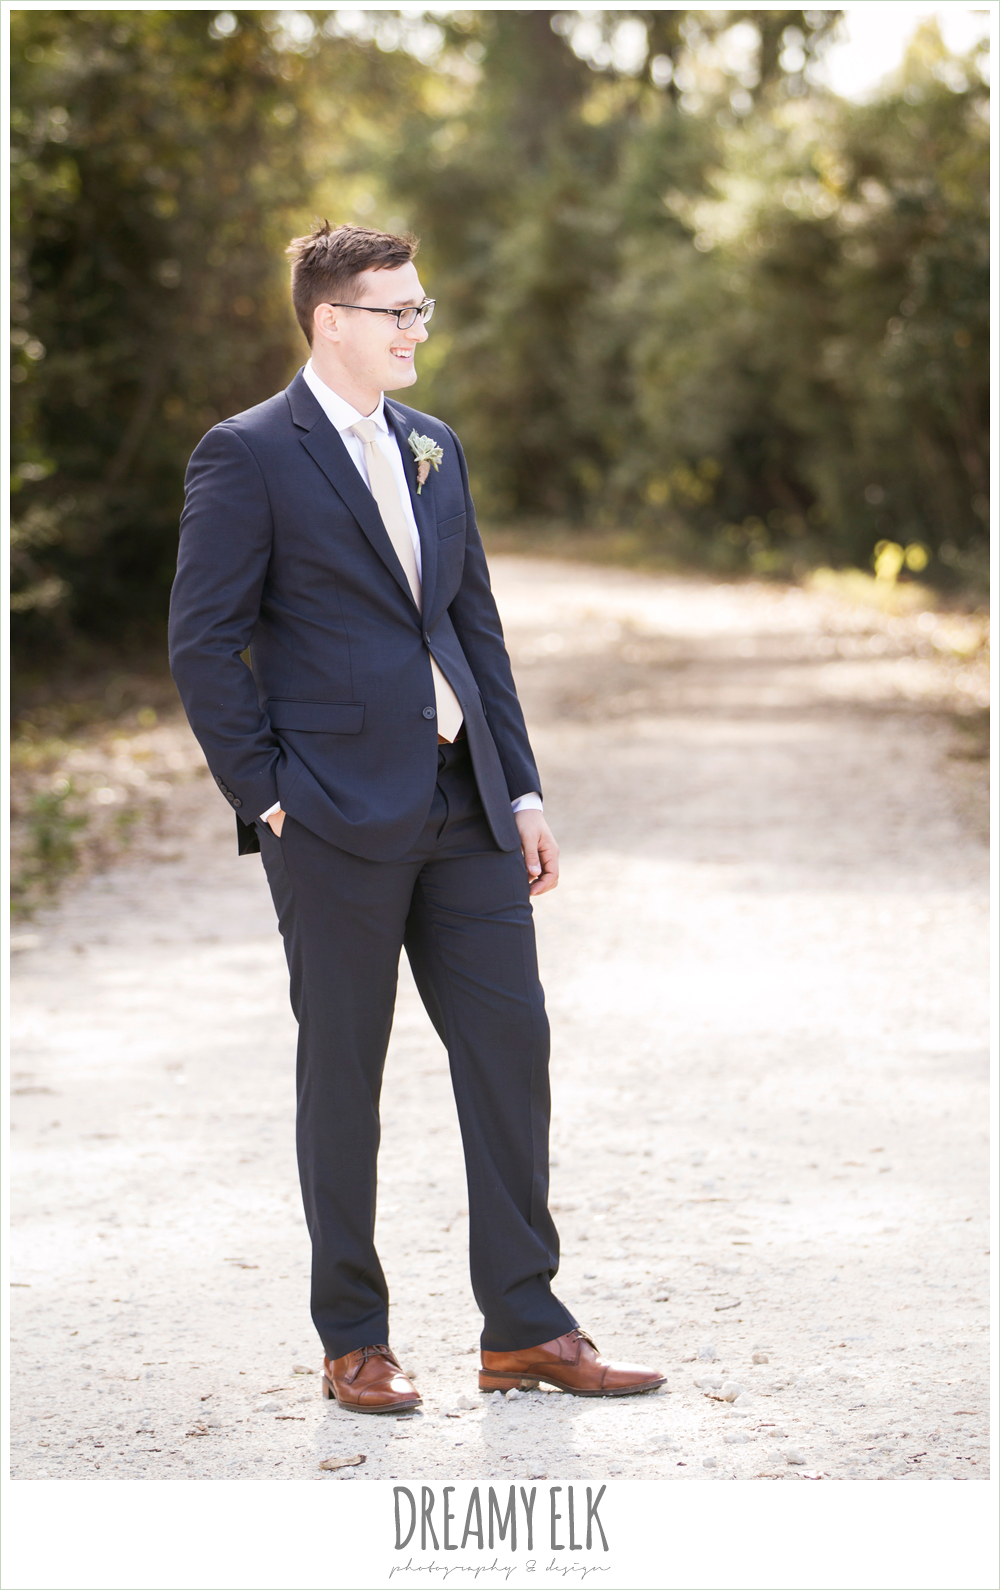 groom in navy suit, rustic chic wedding photo, the amish barn at edge {dreamy elk photography and design}